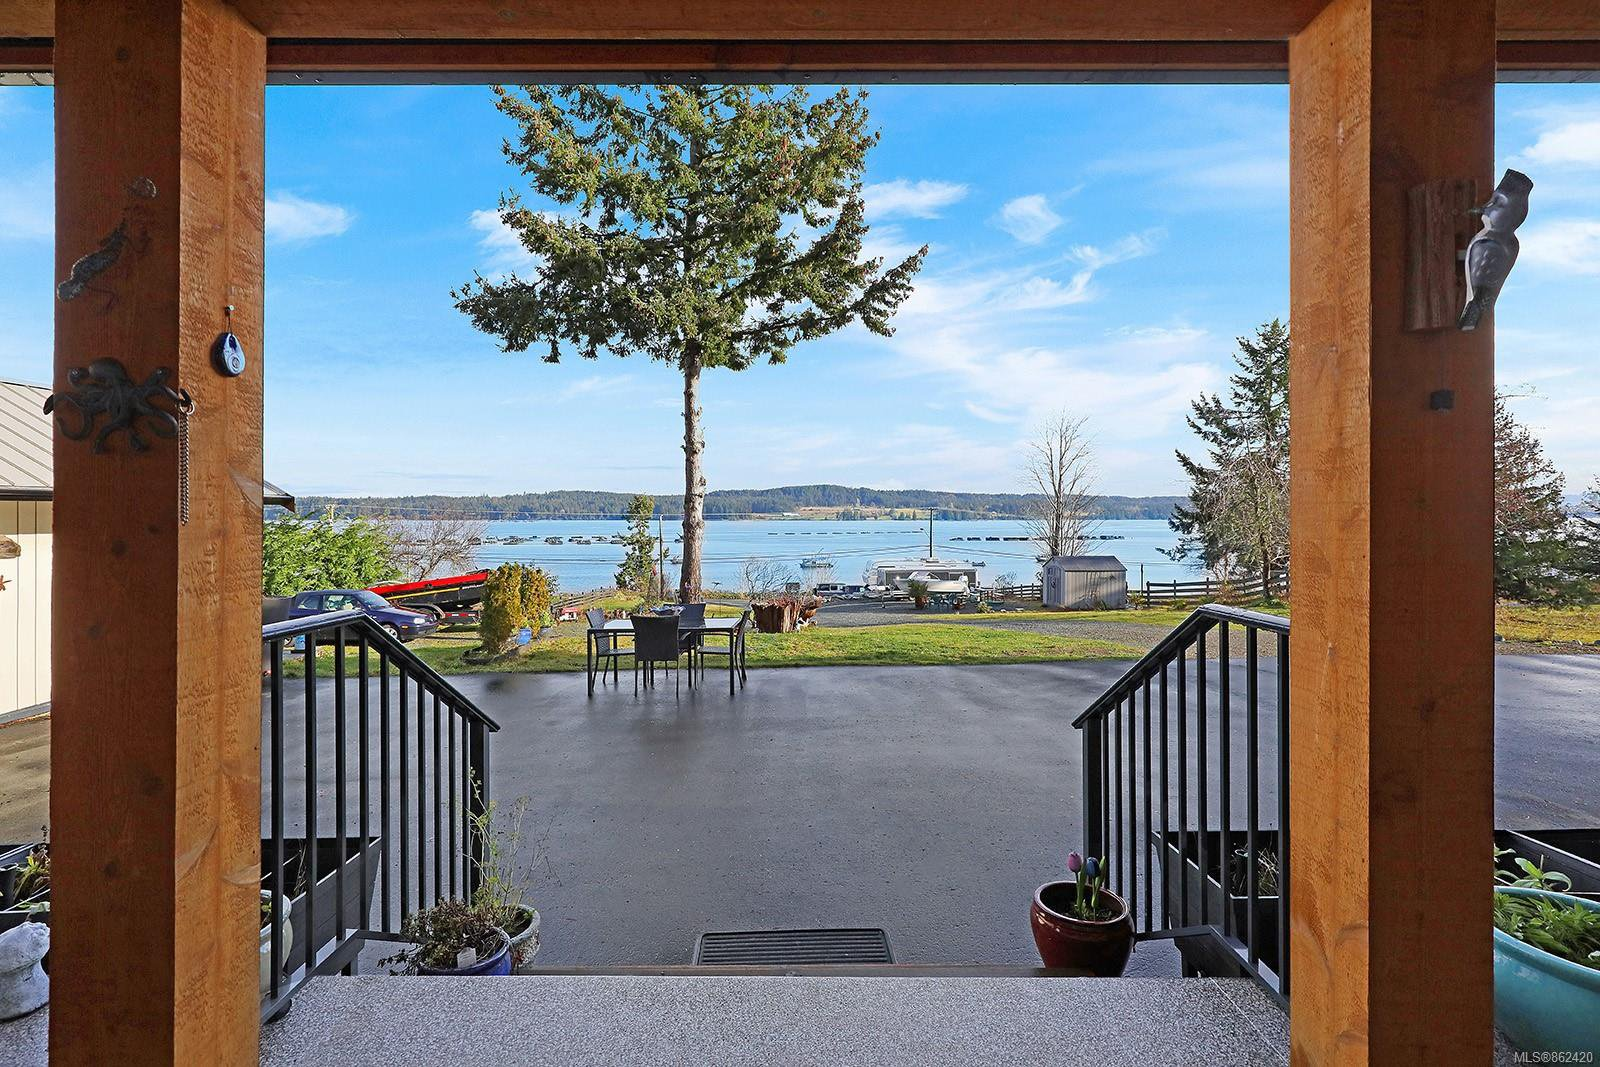 Main Photo: 195 Muschamp Rd in : CV Union Bay/Fanny Bay House for sale (Comox Valley)  : MLS®# 862420